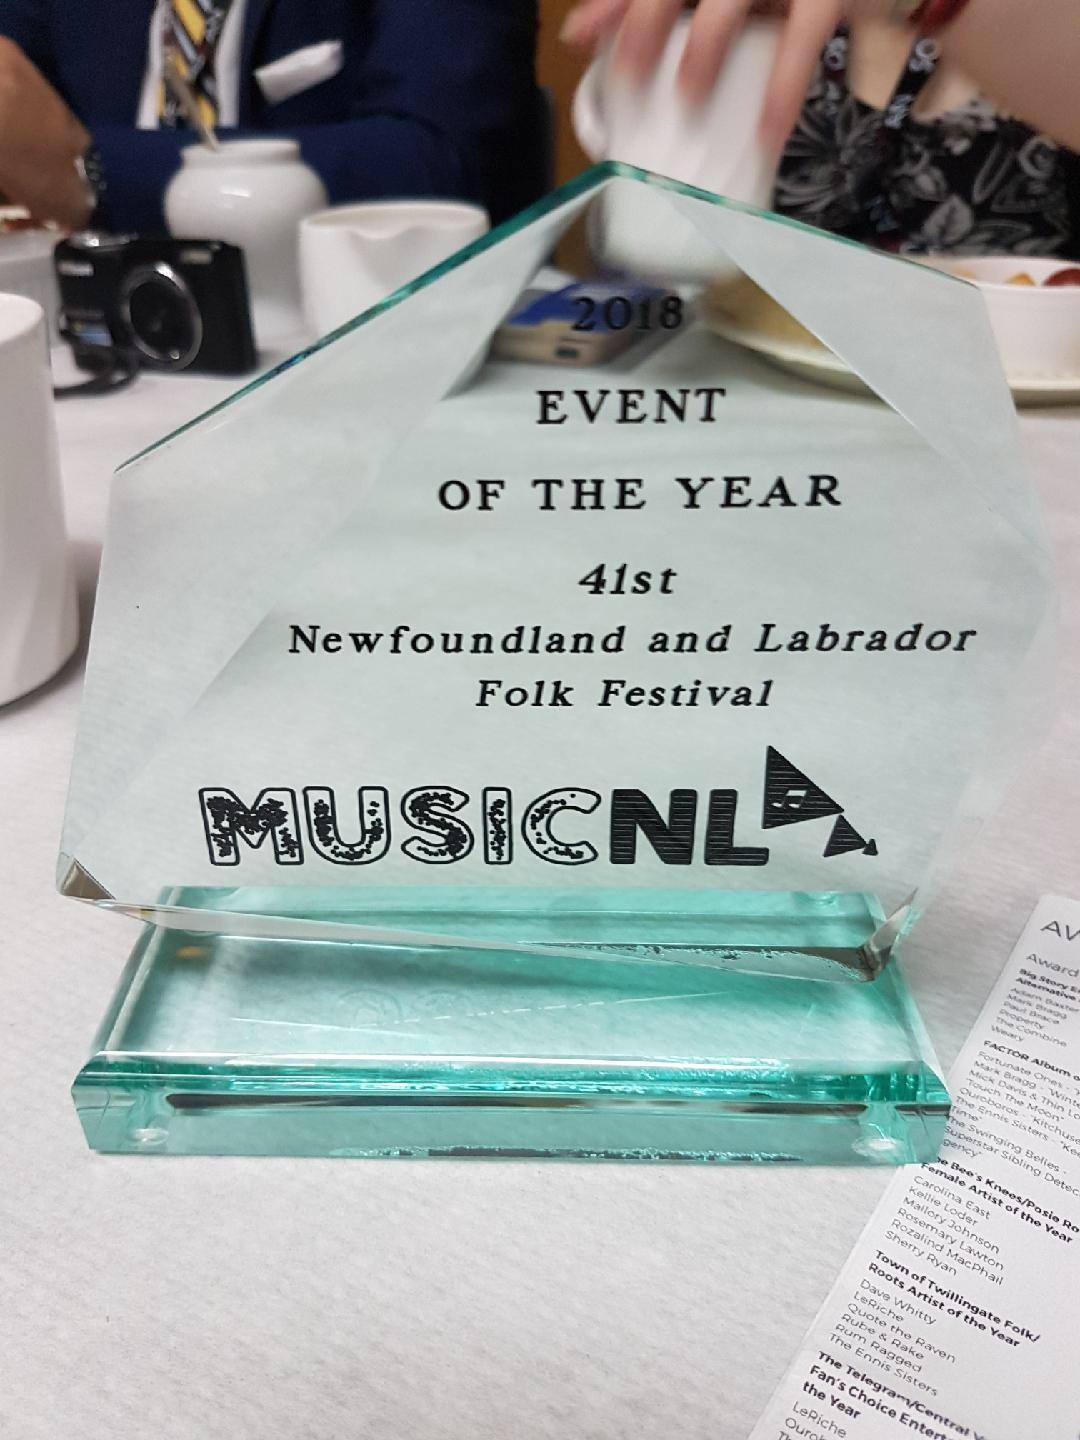 Newfoundland and Labrador Folk Festival Achieves Music NL's Event of the Year Award